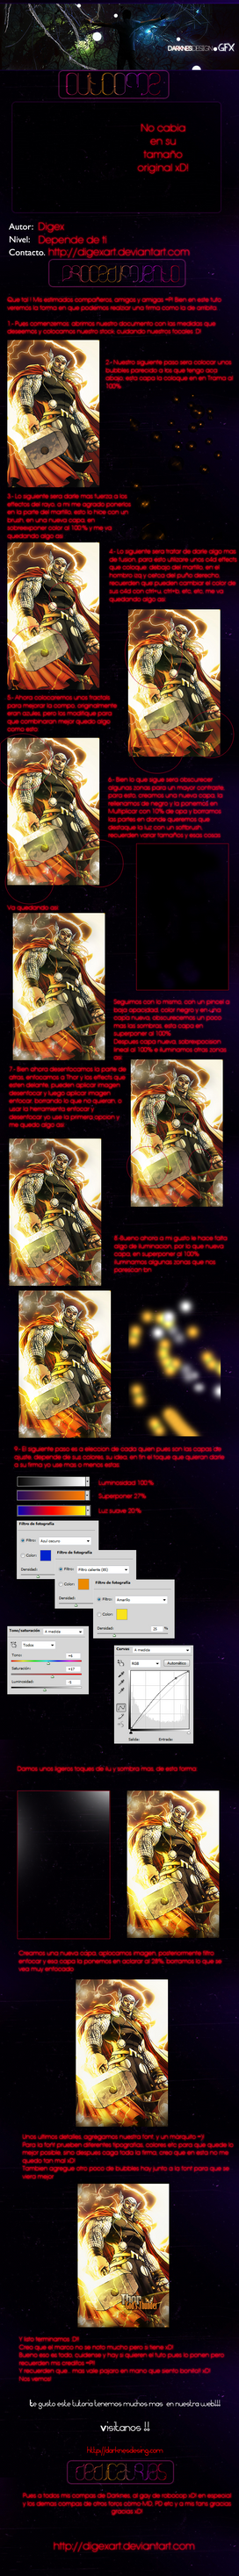 Thor tutorial by DigexArt